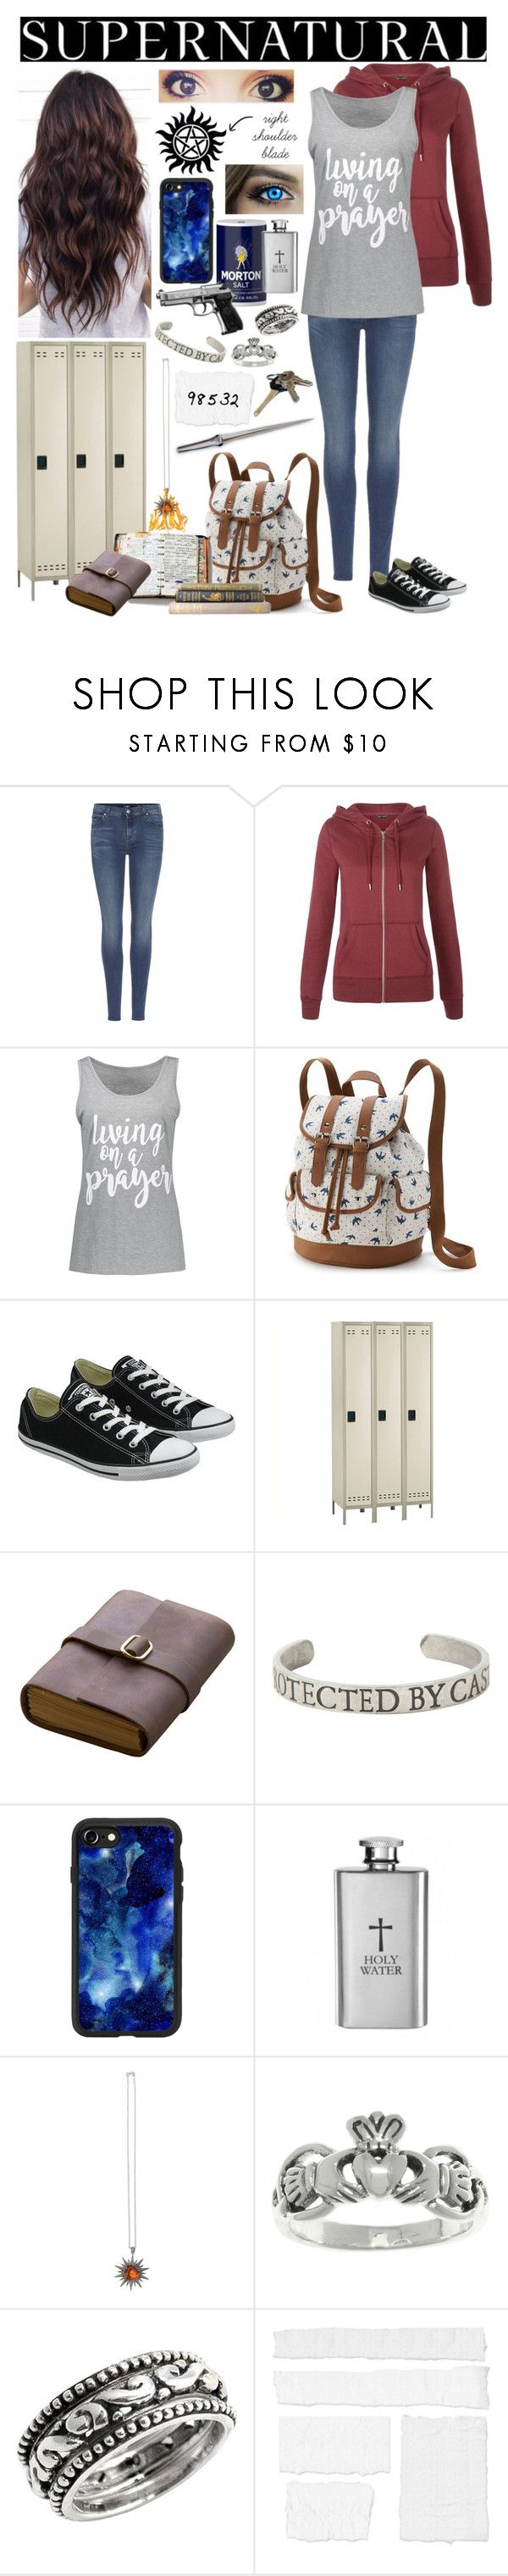 """Supernatural OC - a job in a school"" by seachild41539 ❤ liked on Polyvore featuring 7 For All Mankind, New Look, Candie's, Converse, Safco, Peek, Rear View Prints, Hot Topic, Casetify and Colette Jewelry"